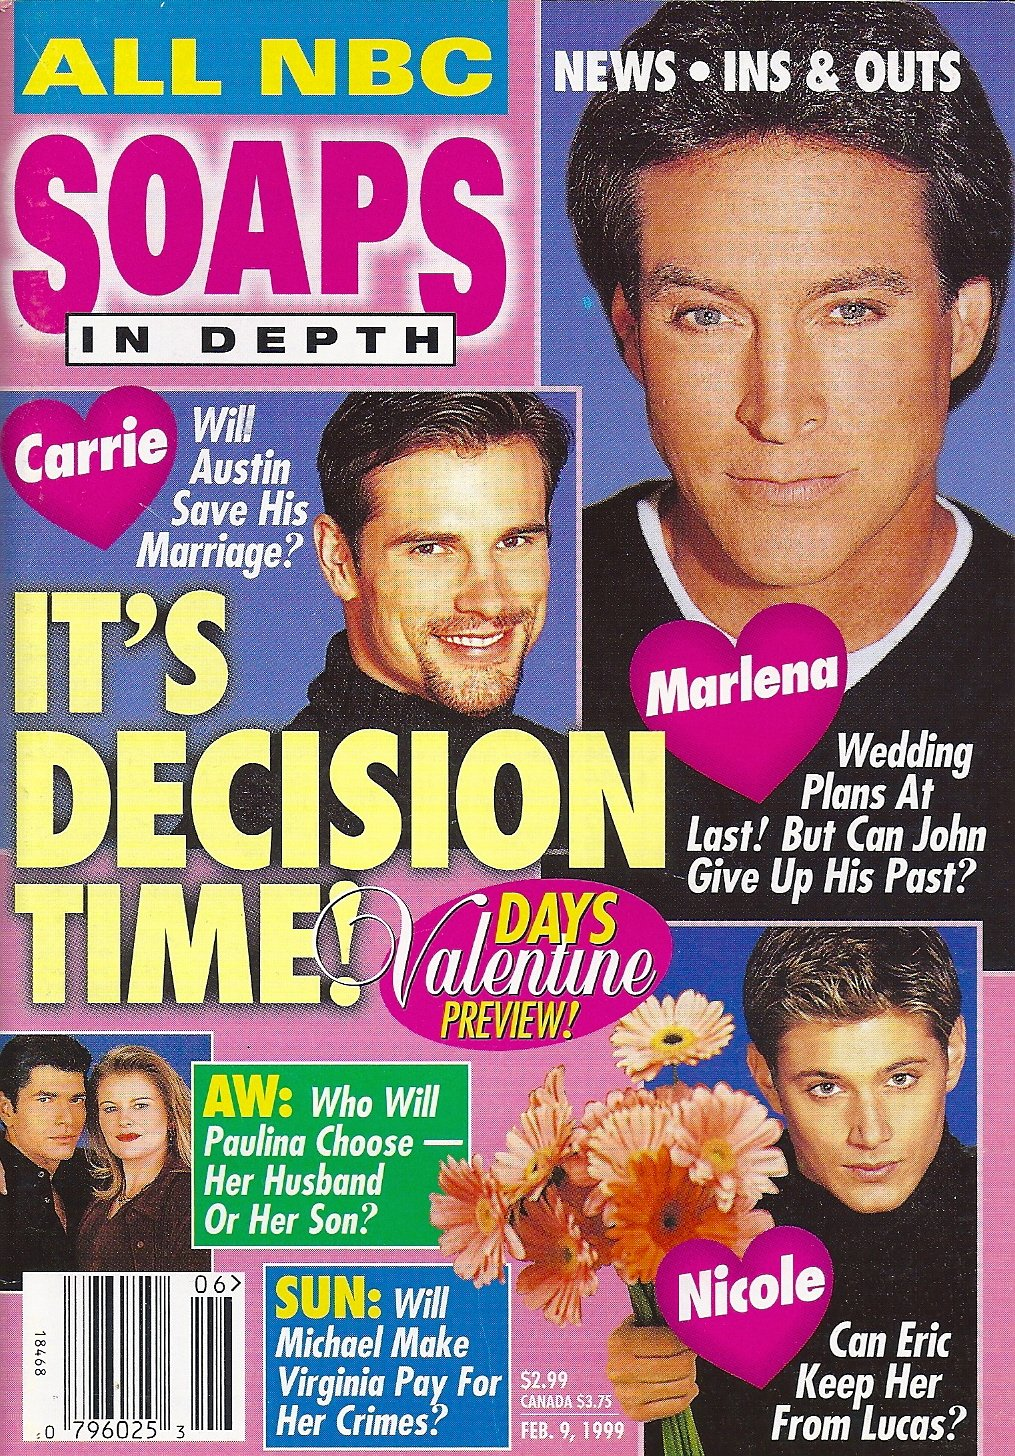 Drake Hogestyn Austin Peck Jensen Ackles Days Of Our Lives February 9 1999 Nbc Soaps In Depth Magazine Soap Opera Dawn Mazzurco Amazon Com Books